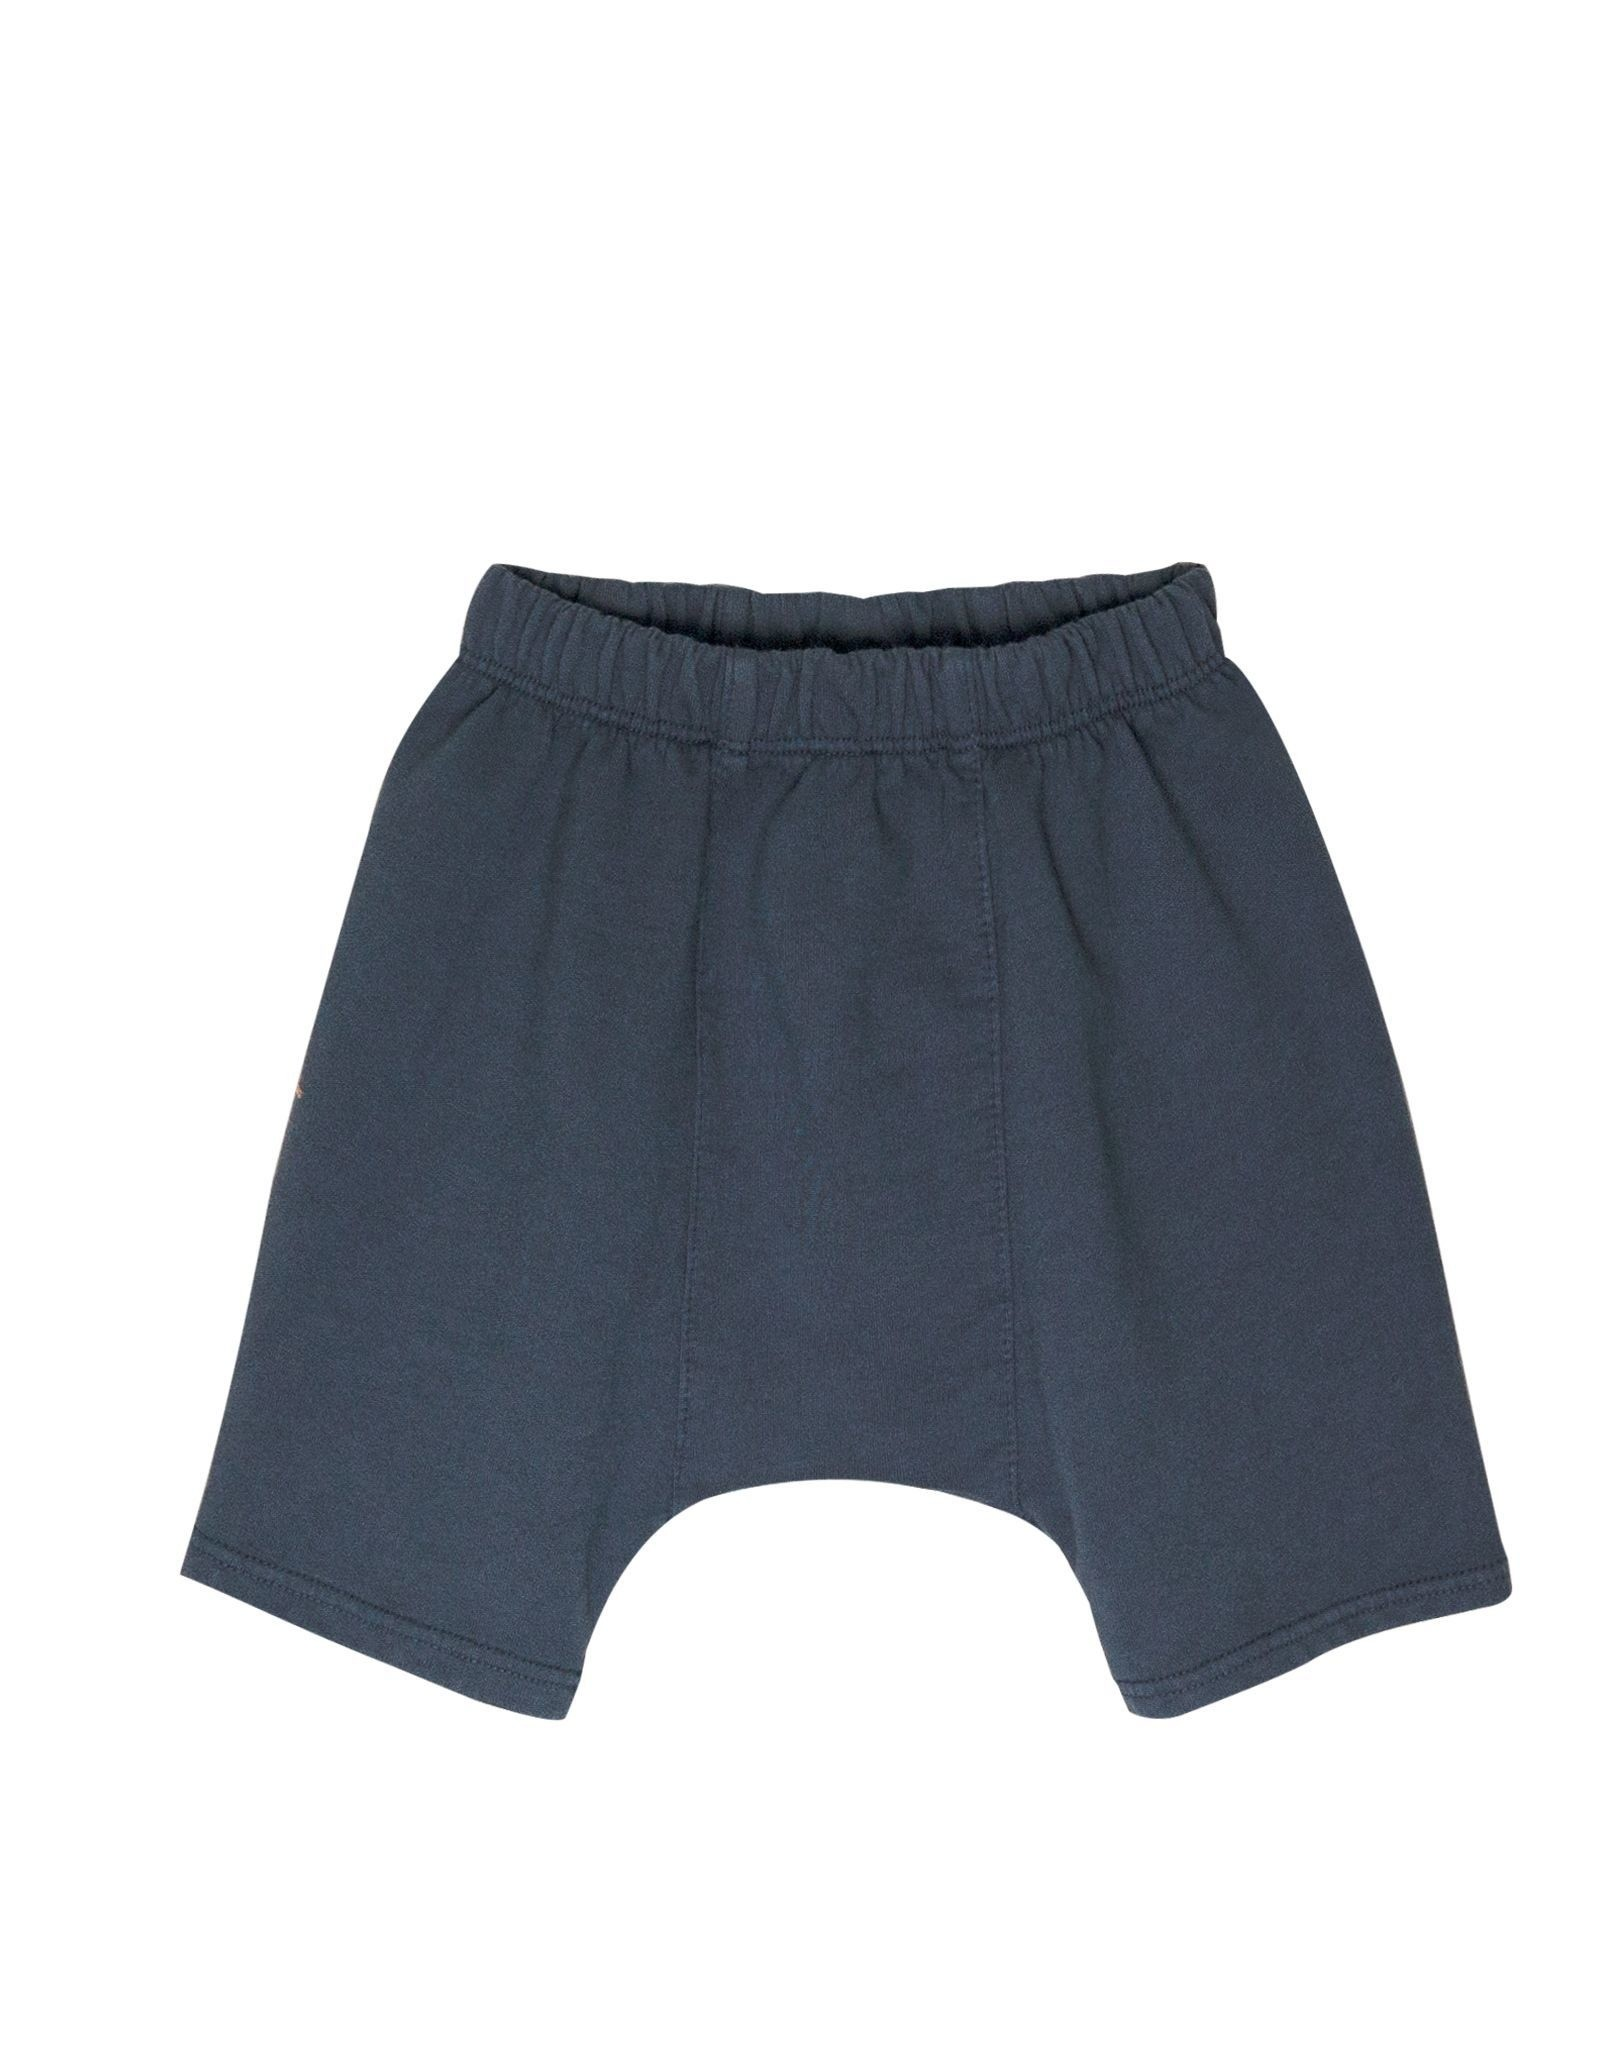 Go Gently Nation panel short- indigo